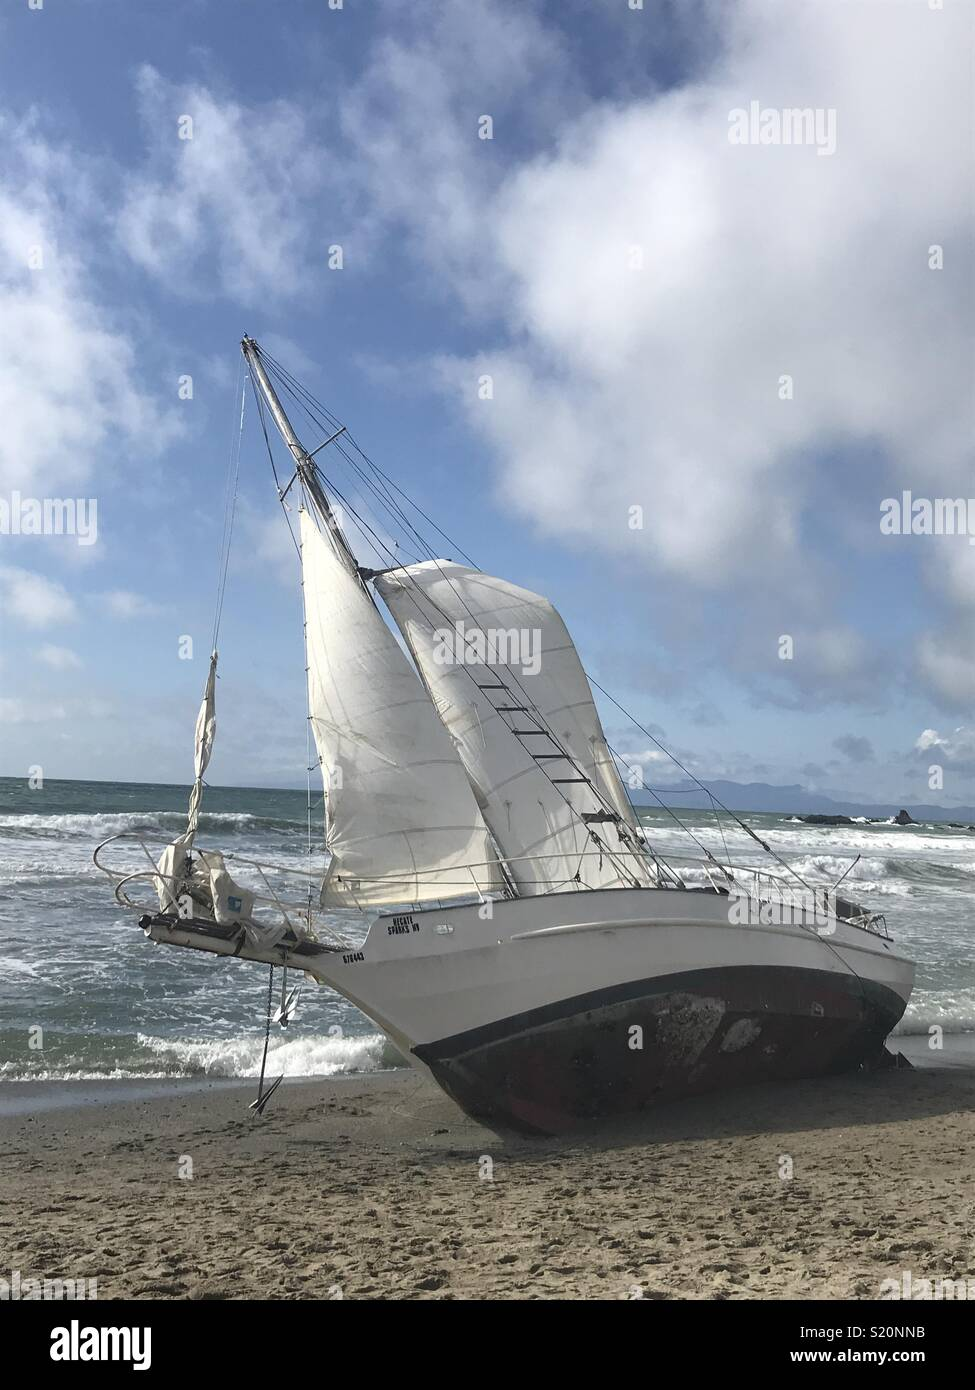 Sailboat runs aground in Pacifica, California - Stock Image